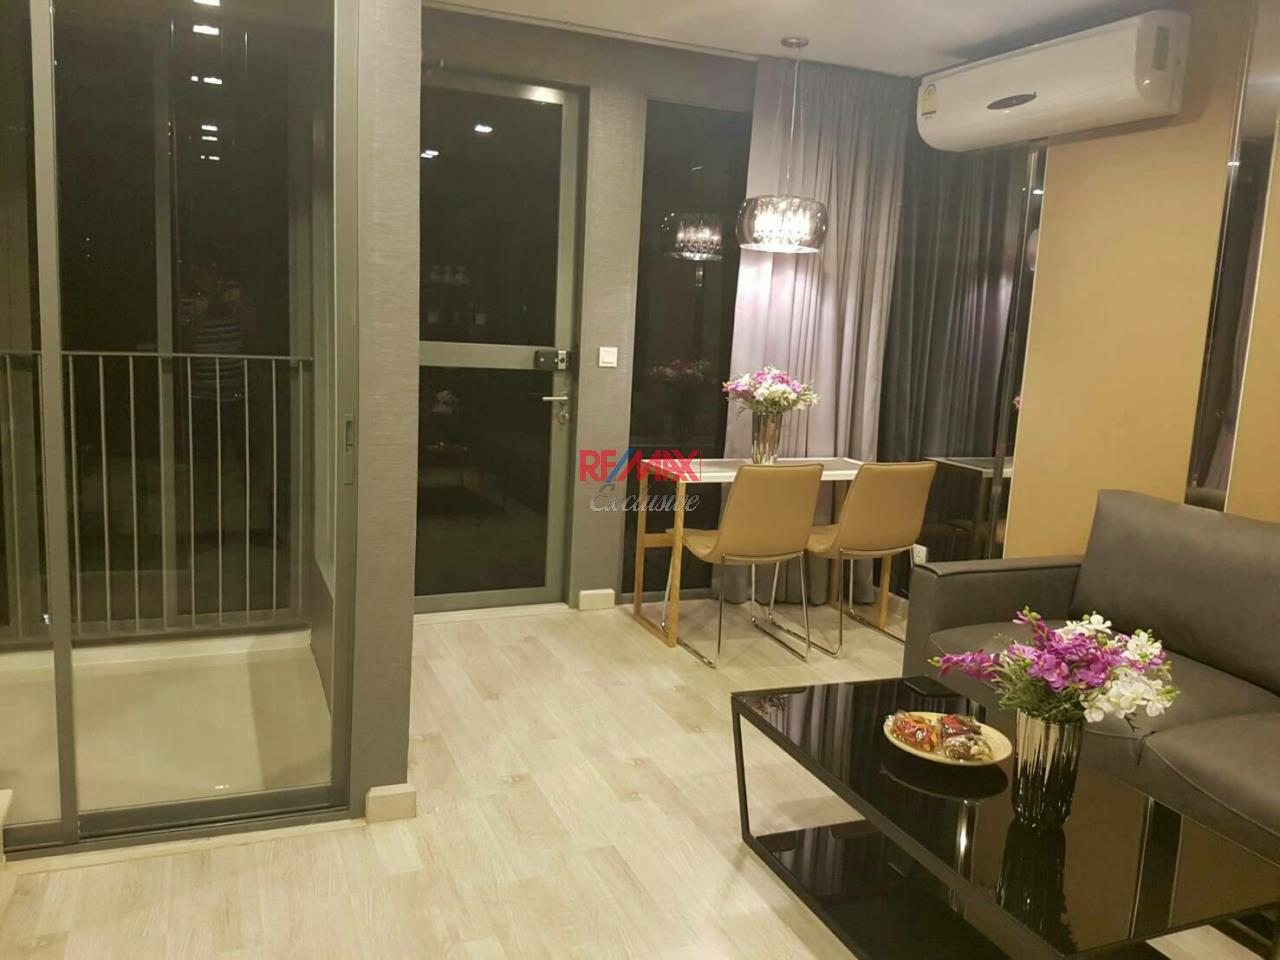 RE/MAX Exclusive Agency's Ideo Mobi Duplex 2 Bedrooms, 62.5 Sqm., For Sale and Rent!! 1